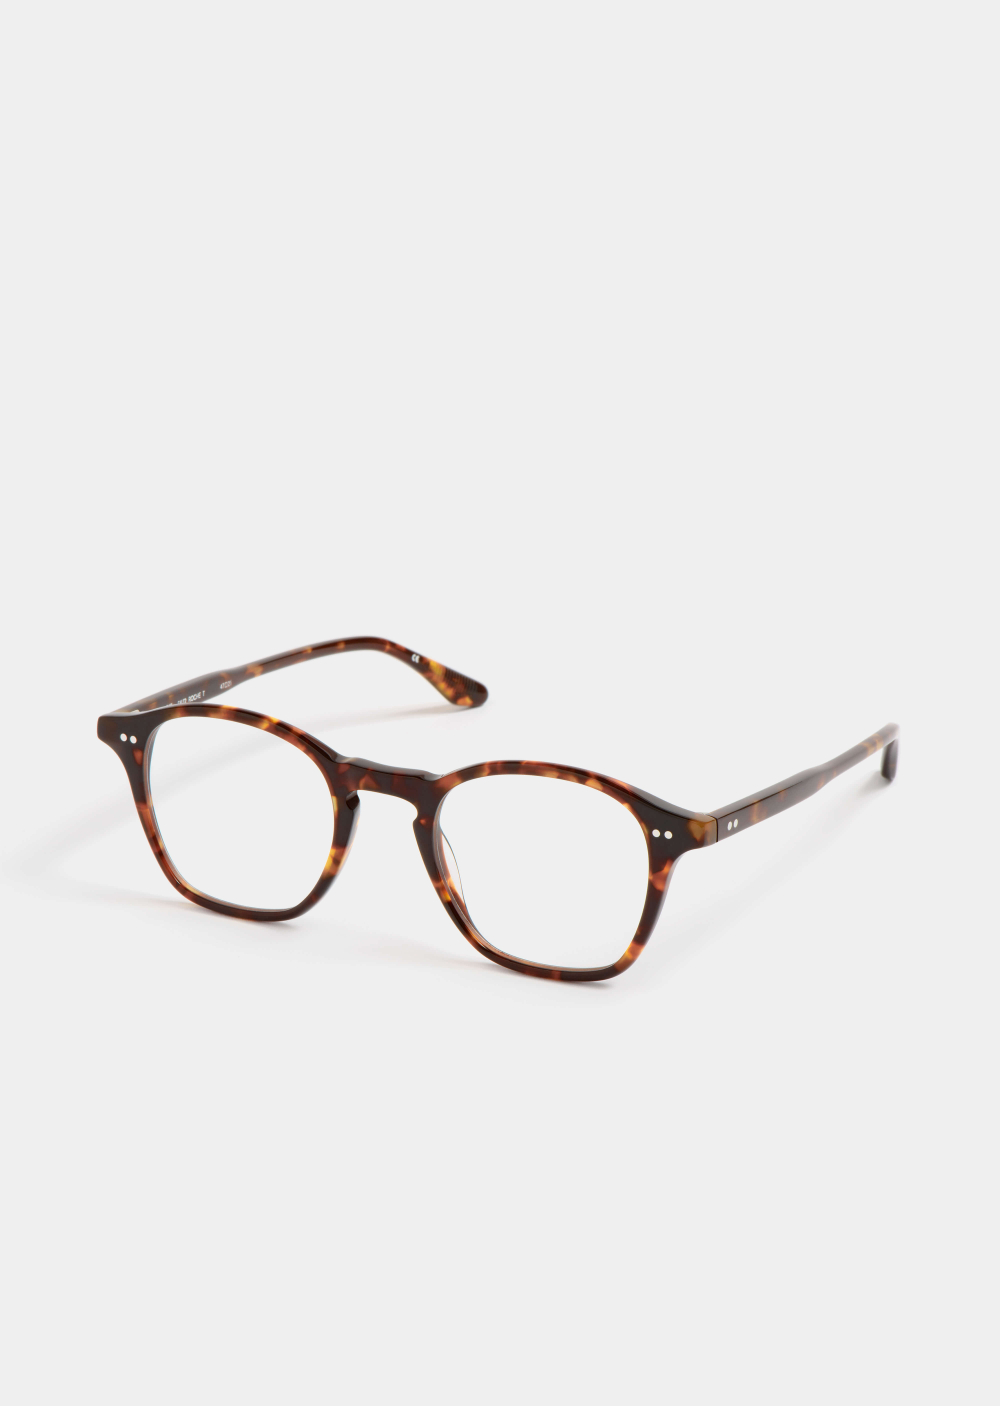 PETER AND MAY -  - LT2 Roche RX tortoise